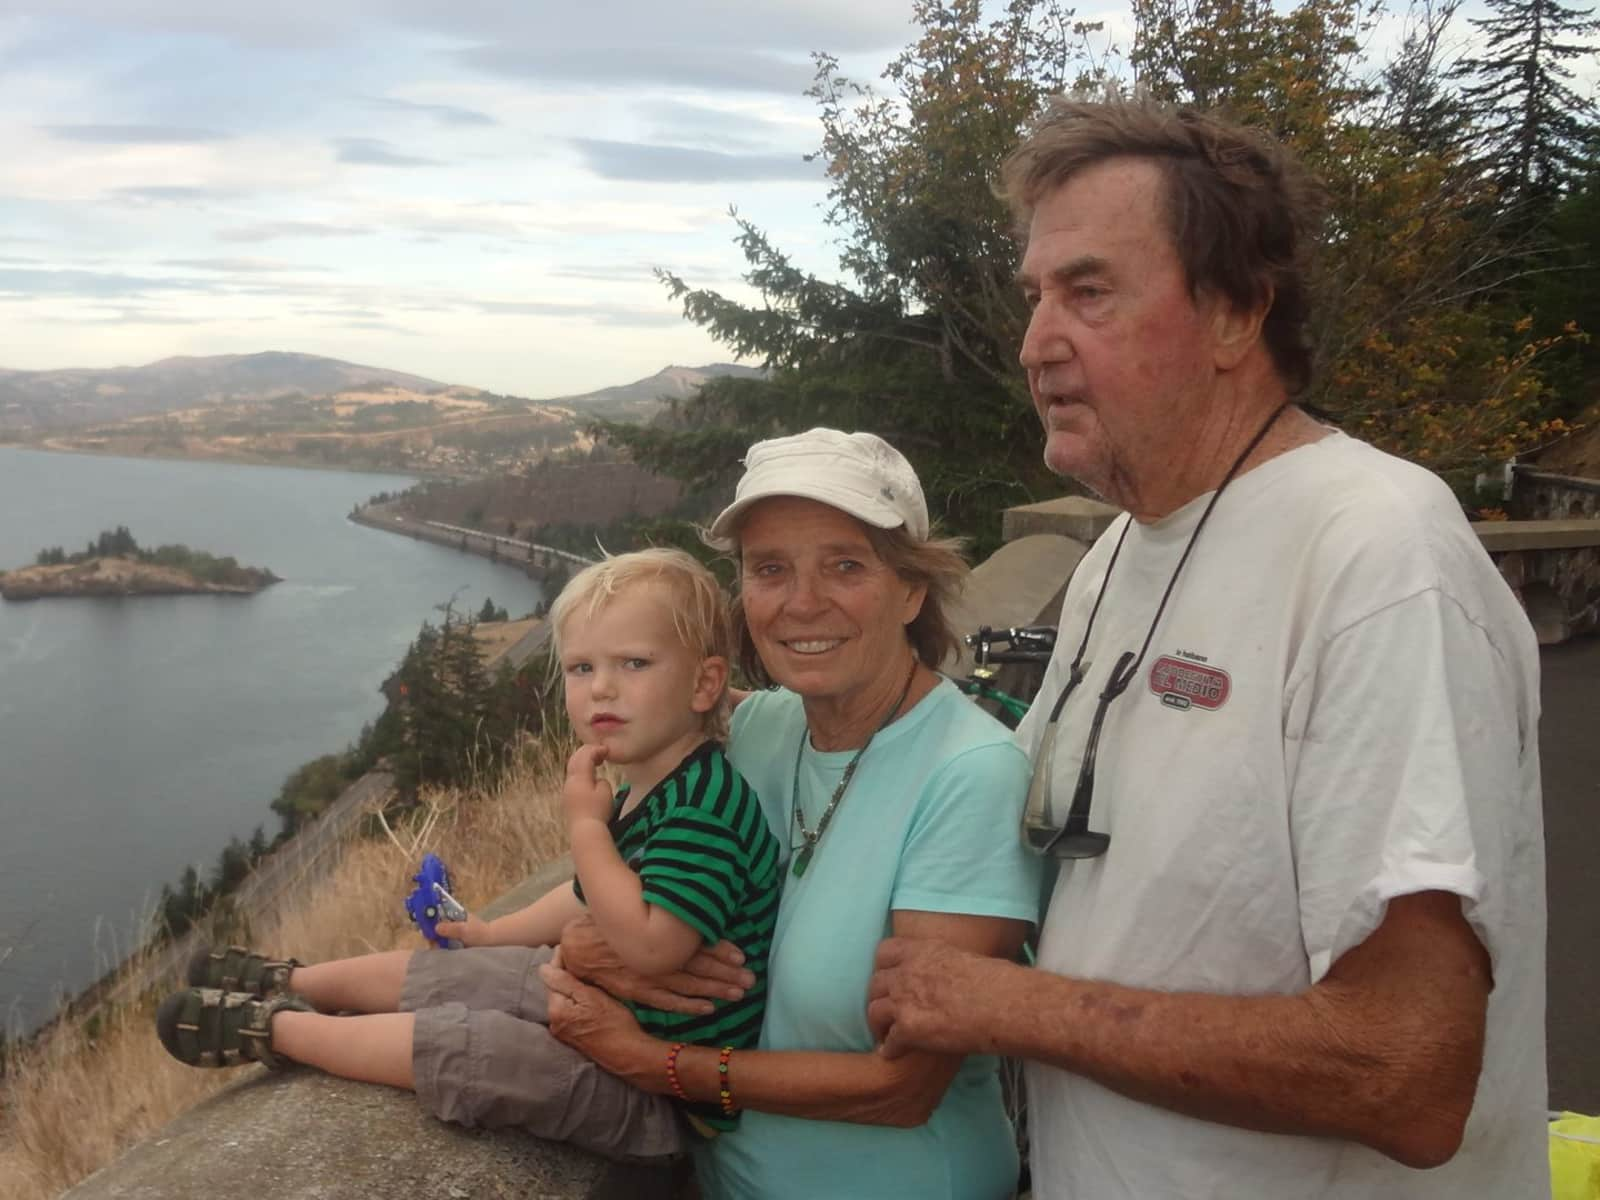 Chris & Bill from Hood River, Oregon, United States